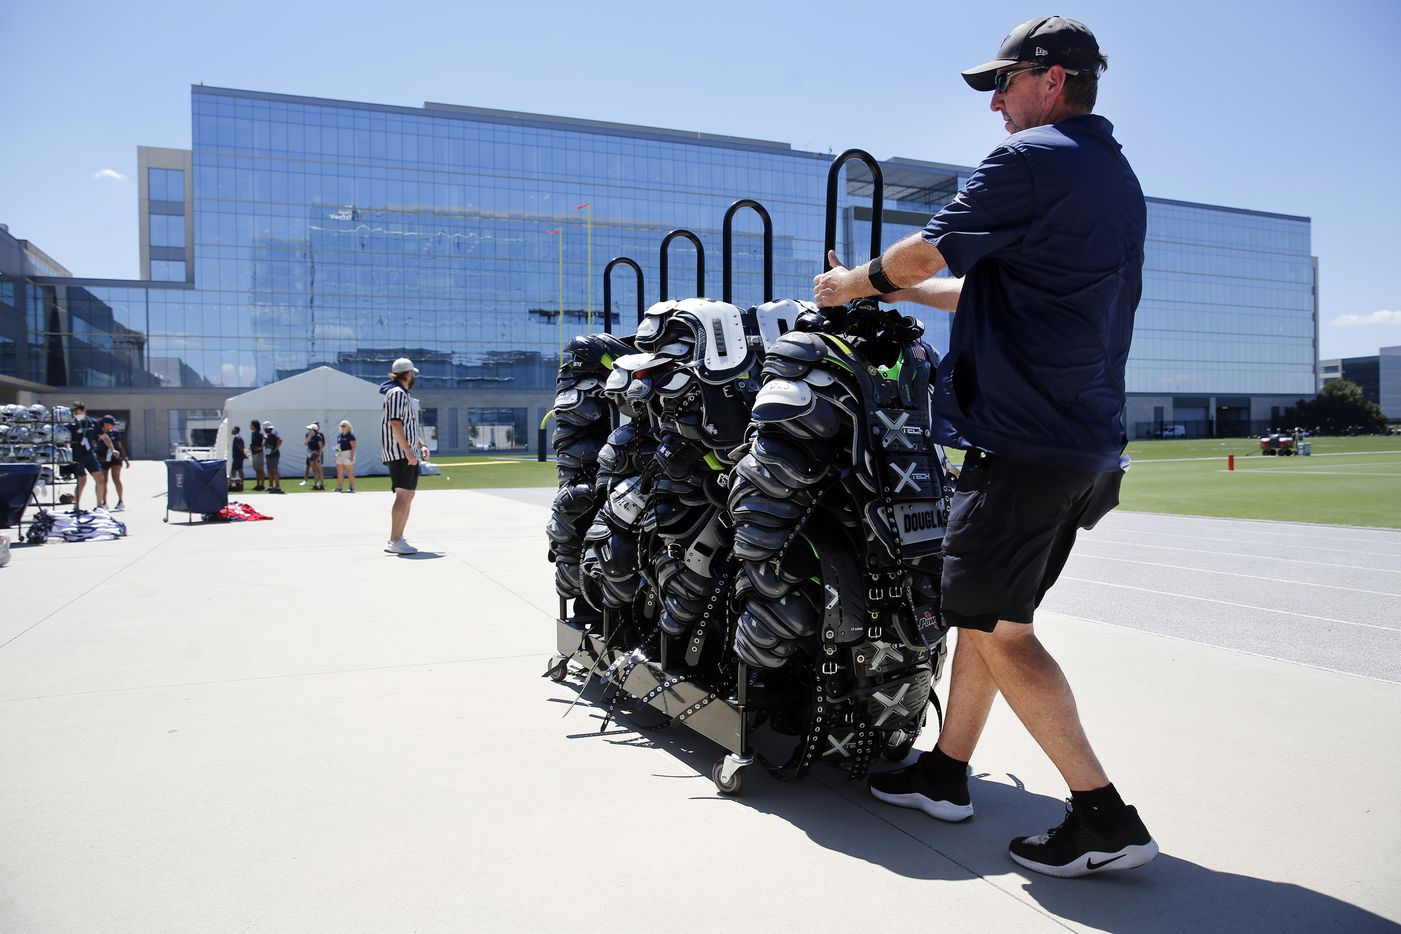 Dallas Cowboys equipment manager Mike McCord pulls a rack of shoulder pads after players shed them following Training Camp practice at The Star in Frisco, Texas, Tuesday, August 24, 2021.(Tom Fox/The Dallas Morning News)